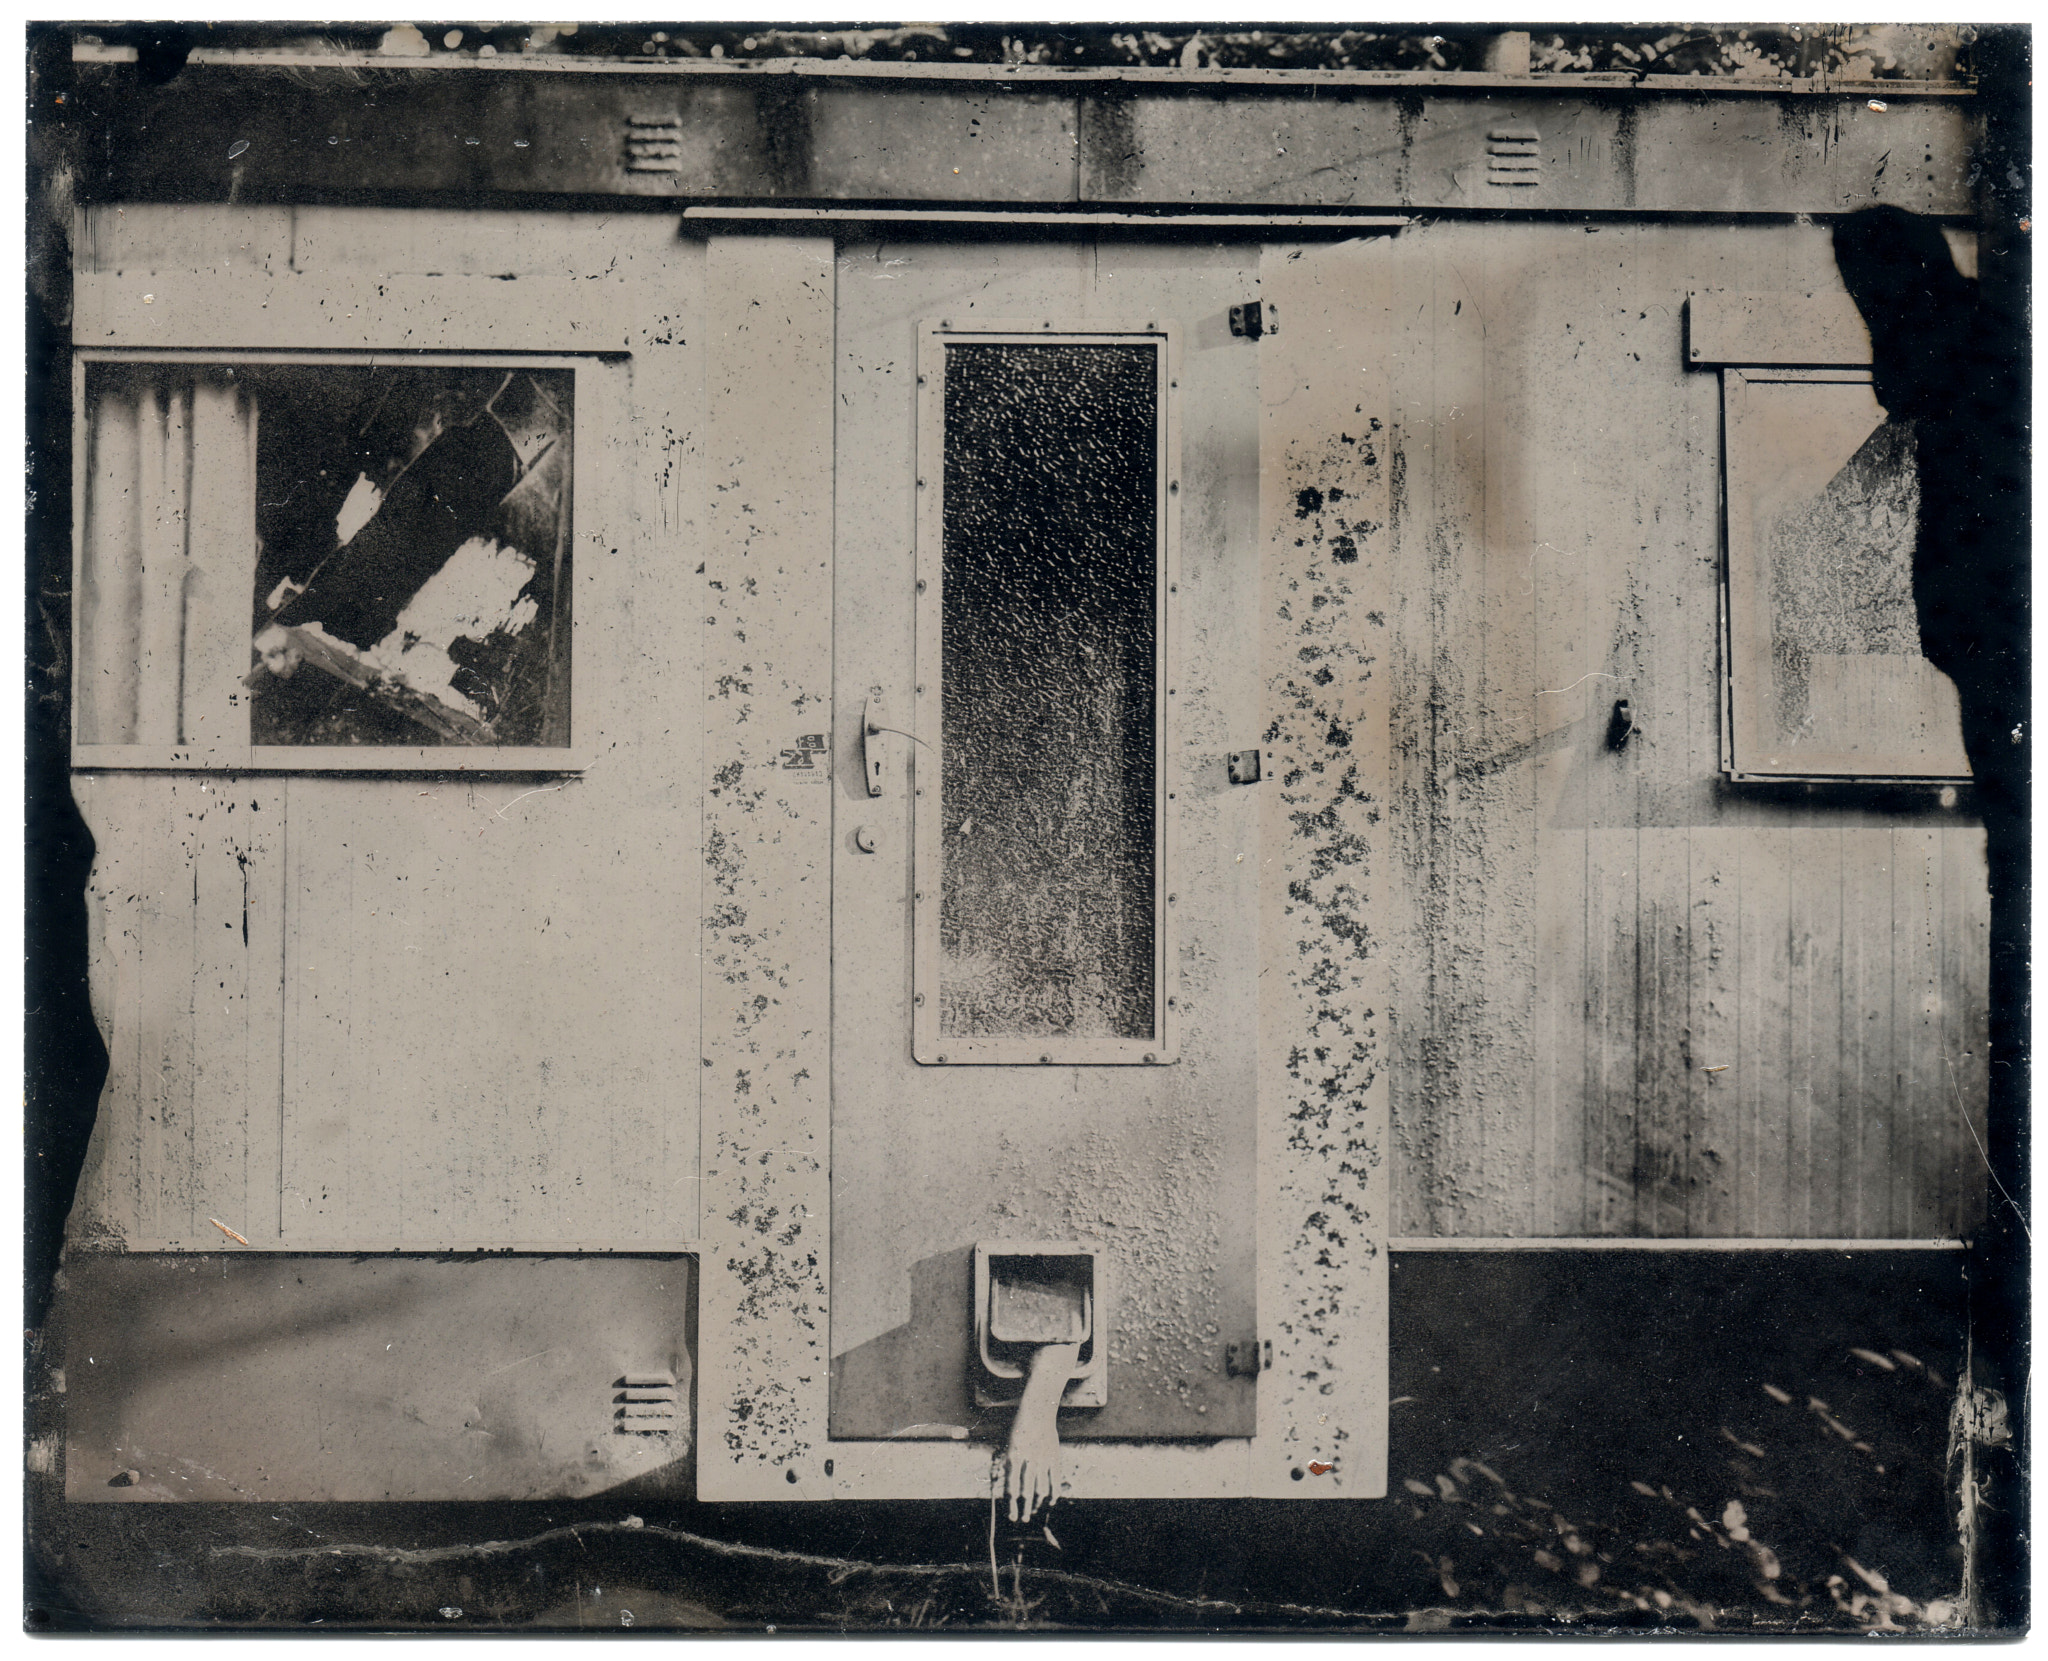 Photograph Creepy Old Mobile Home by Sam Cornwell on 500px